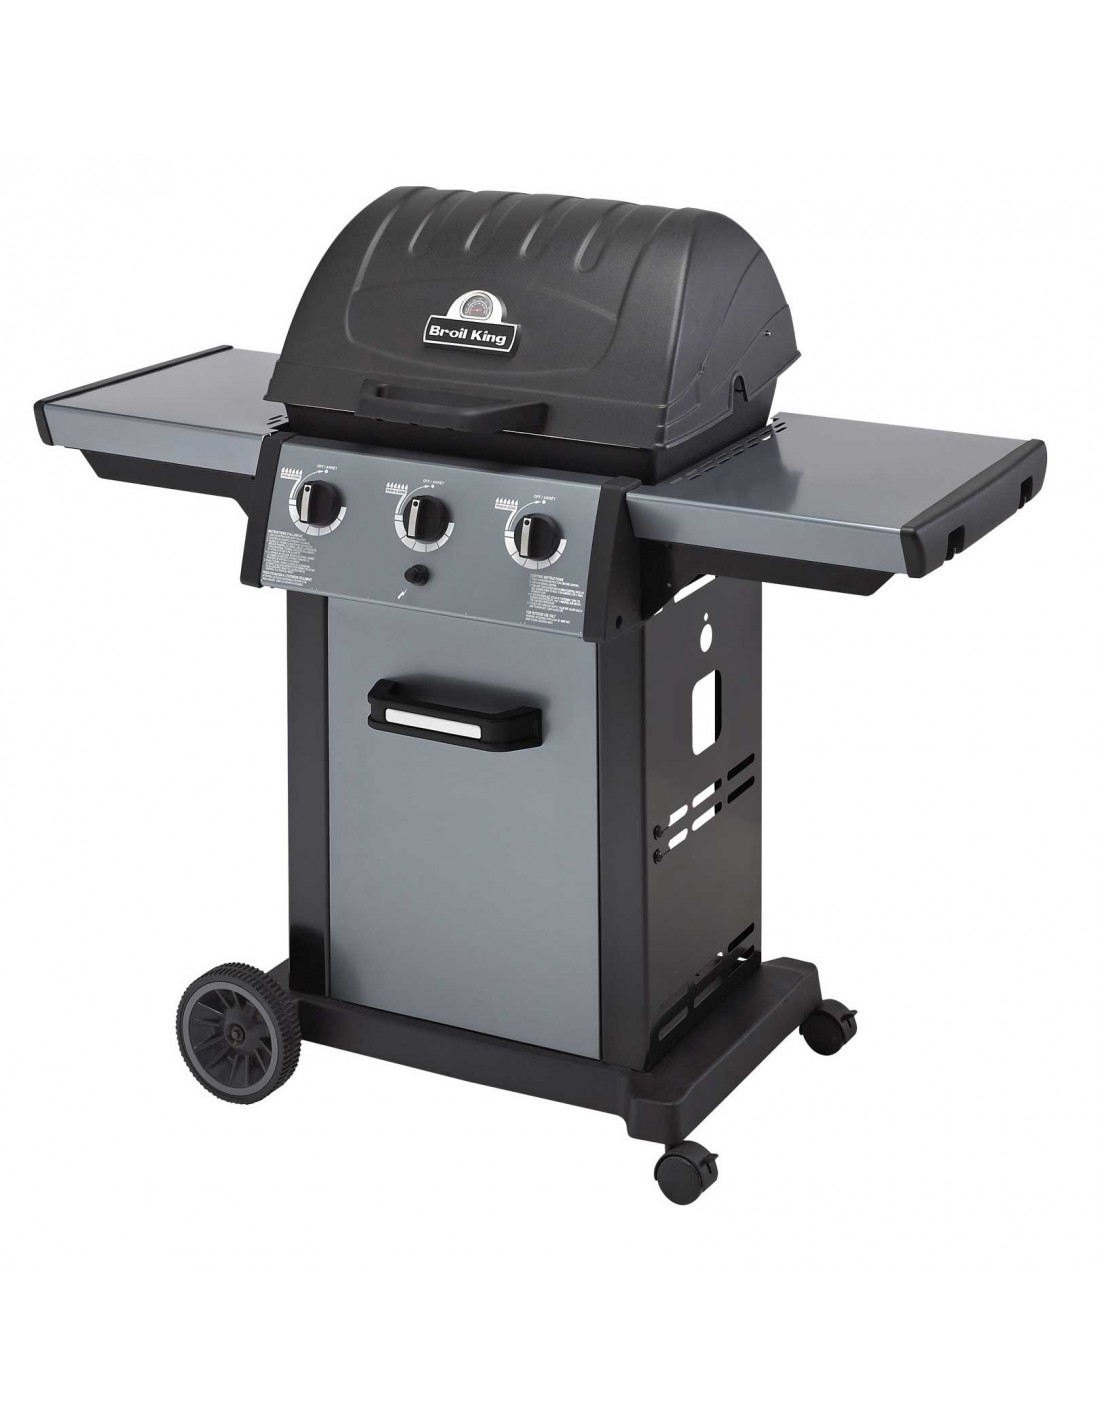 Barbecue gaz broil king royal 320 - Barbecue gaz encastrable ...